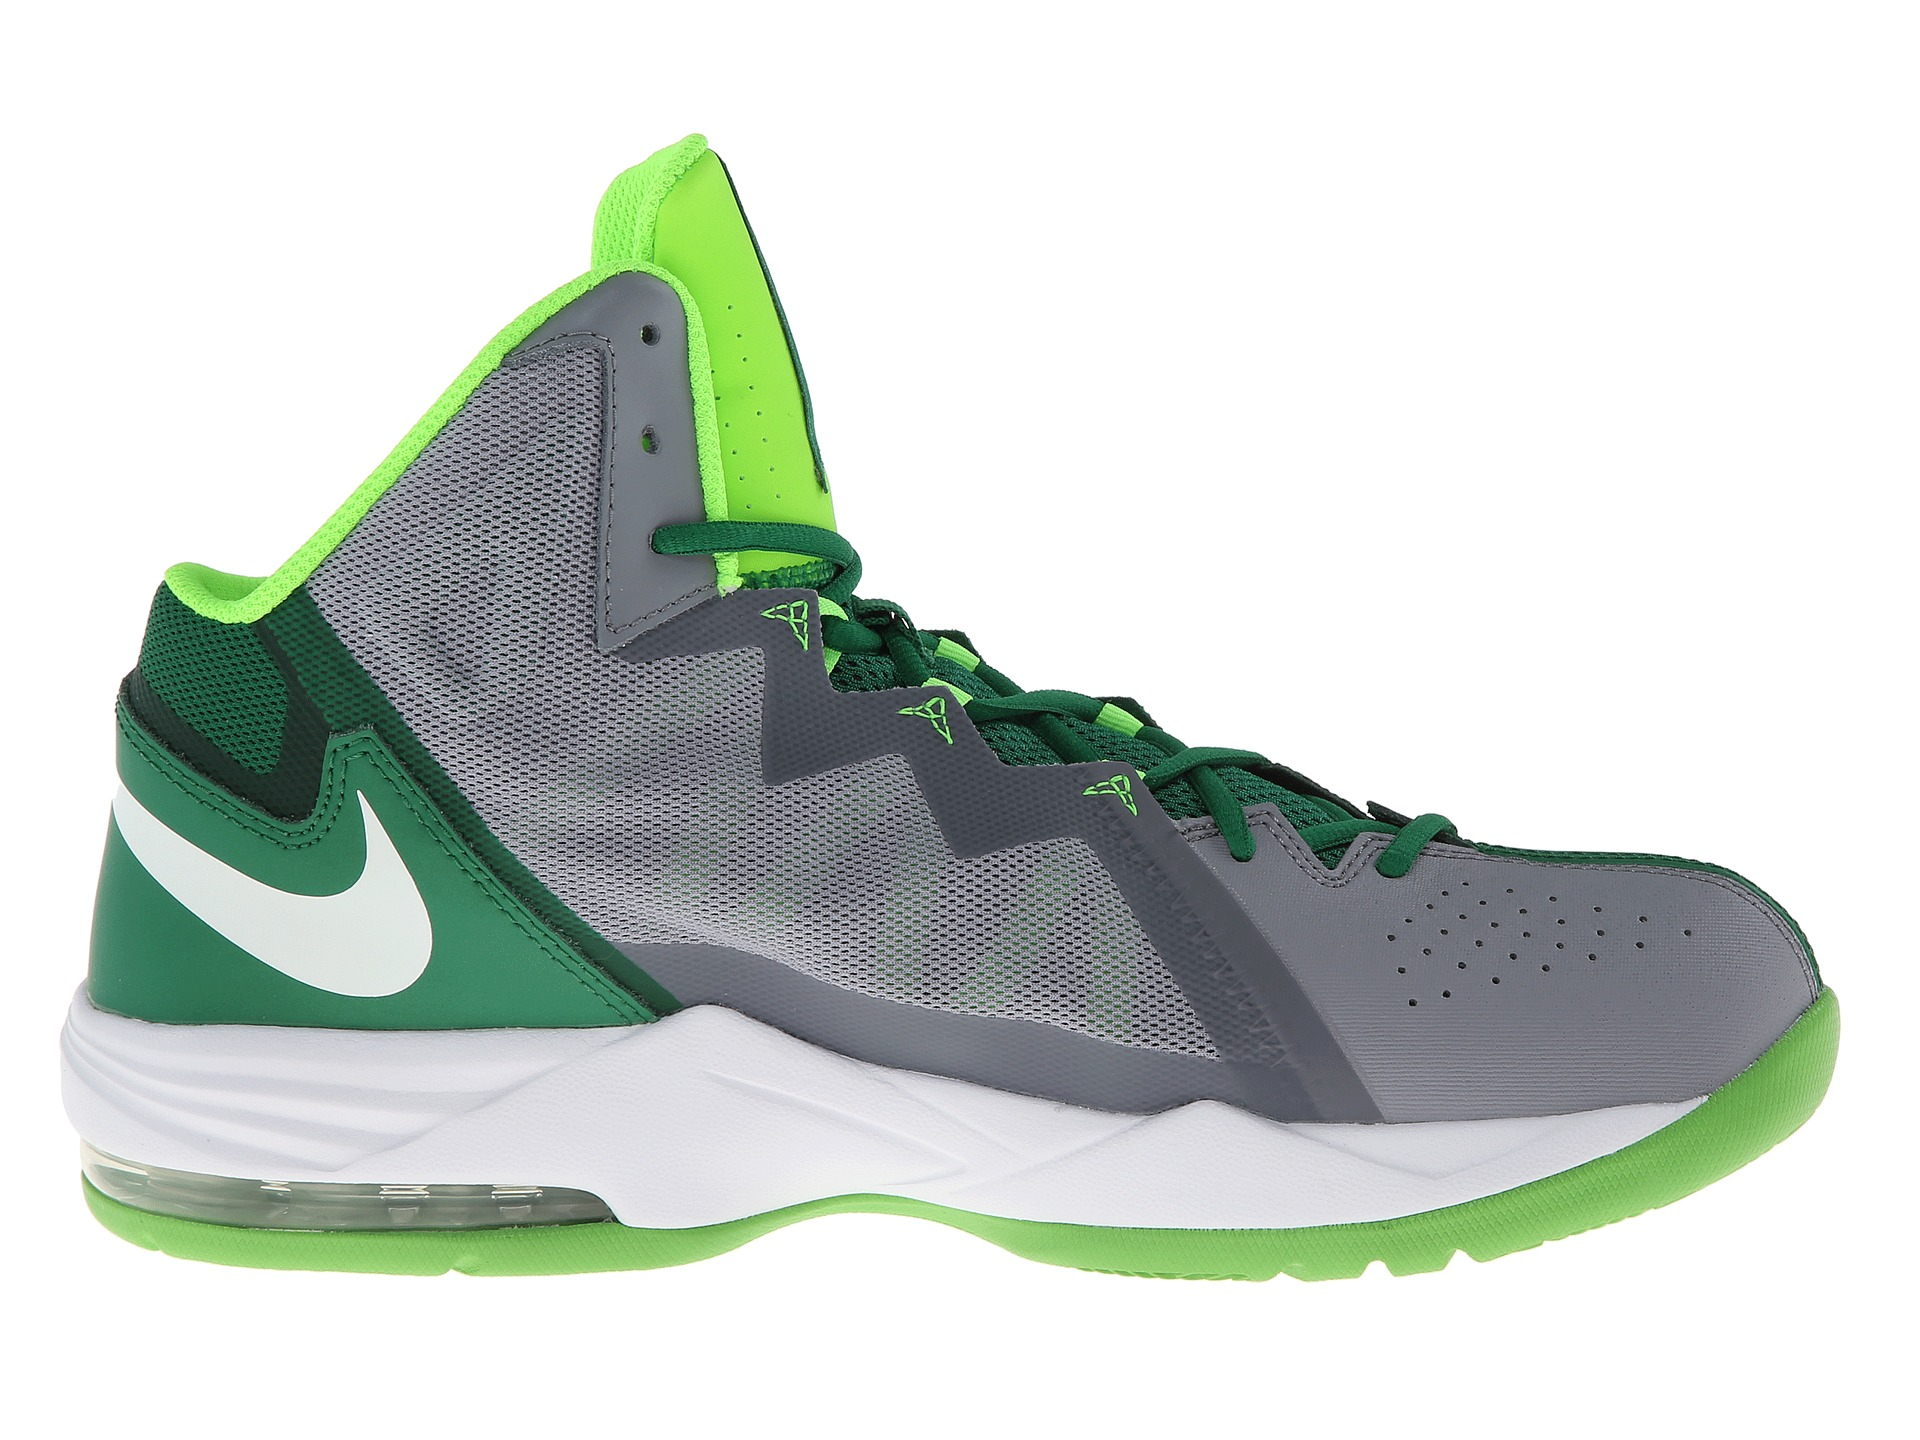 nike air max stutter step 2 pine greenstealthelectric